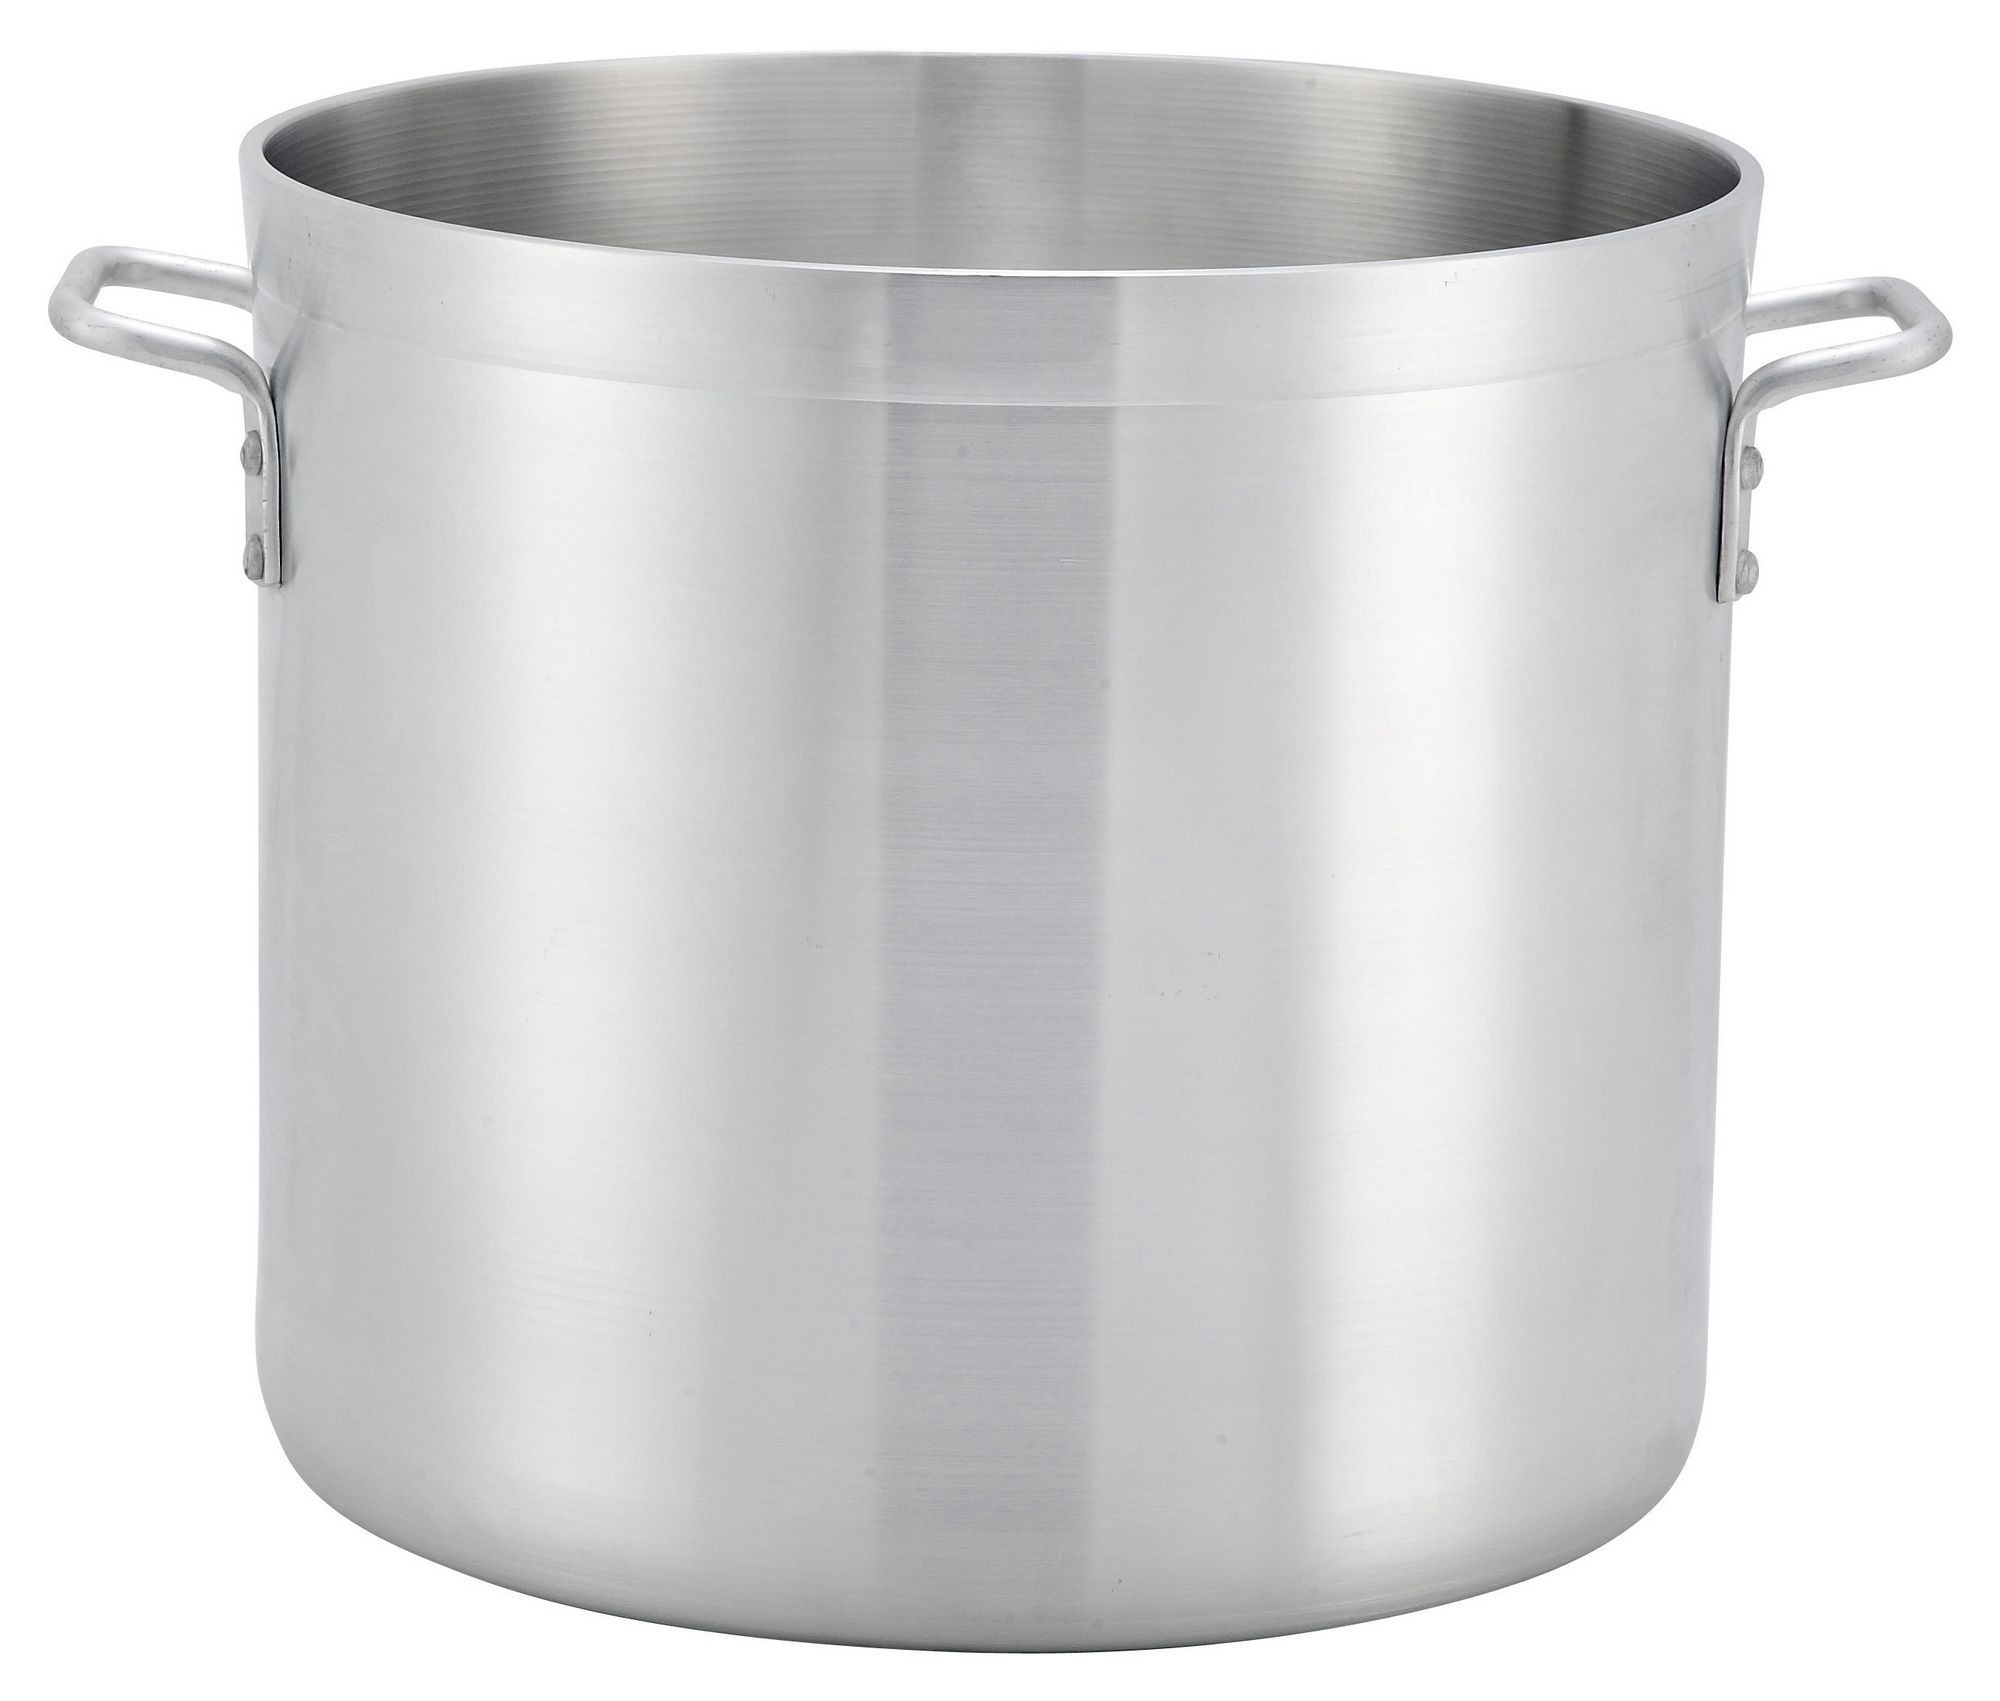 Winco ALHP-100 Precision Aluminum 100 Qt. Stock Pot